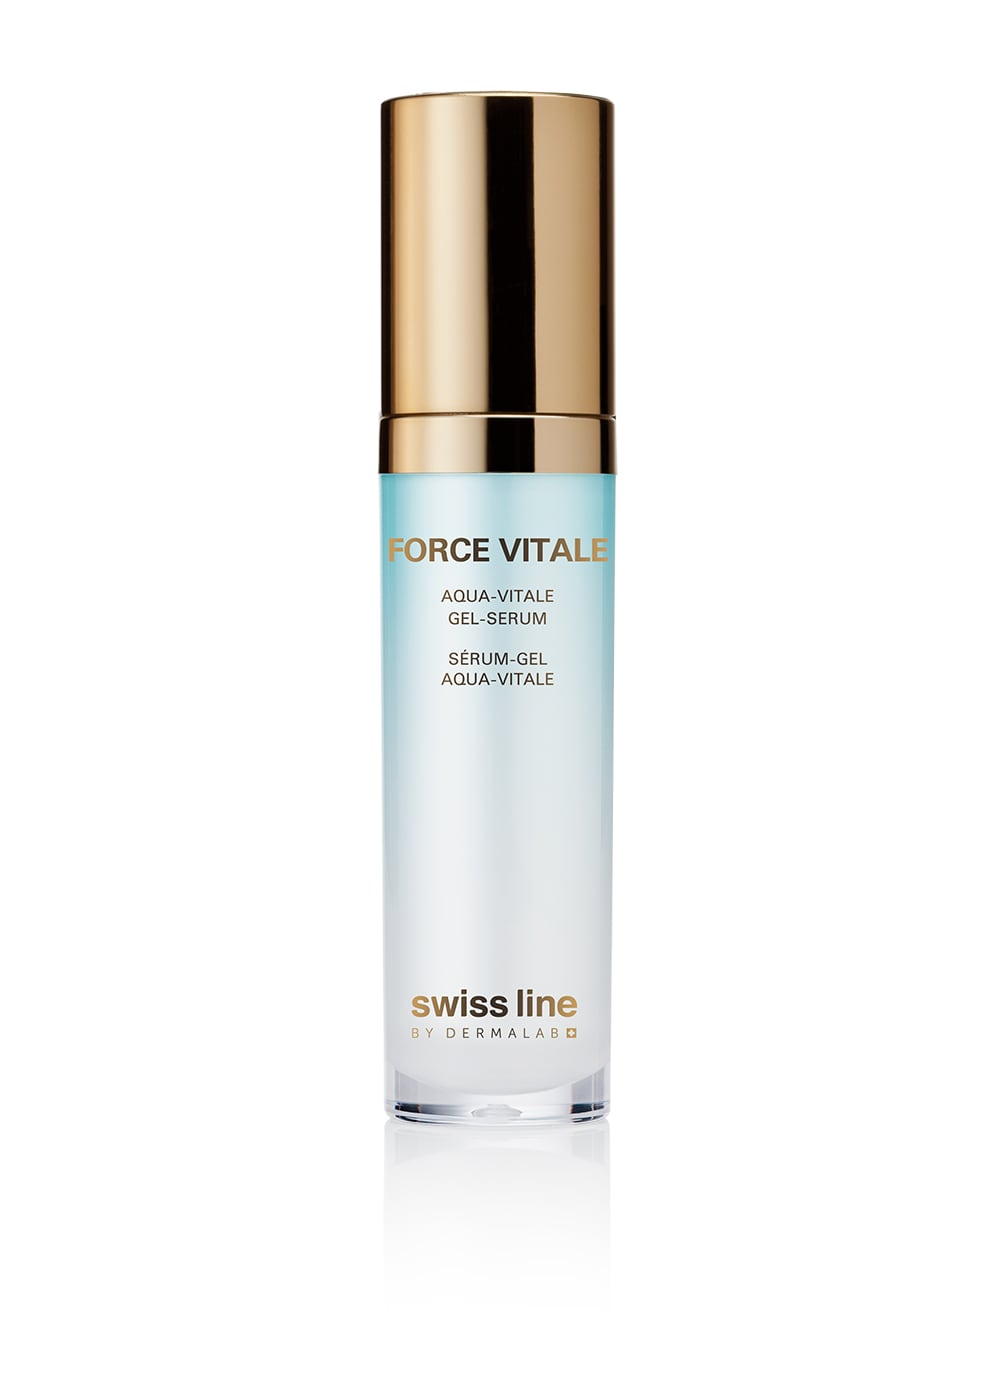 Swiss Line Force Vitale Aqua Vitale Gel Serum